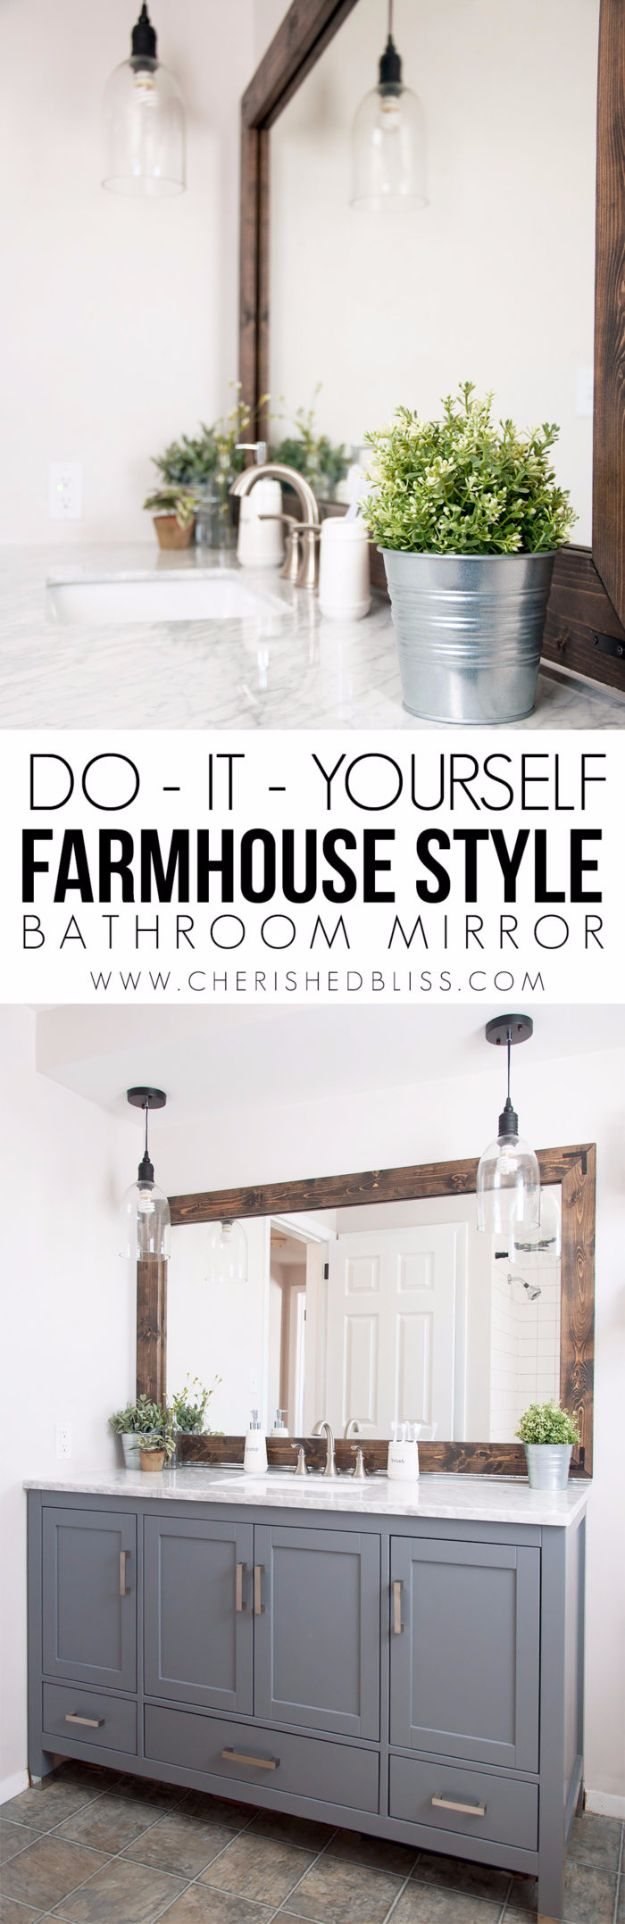 best 20+ farmhouse furniture ideas on pinterest | half bathroom